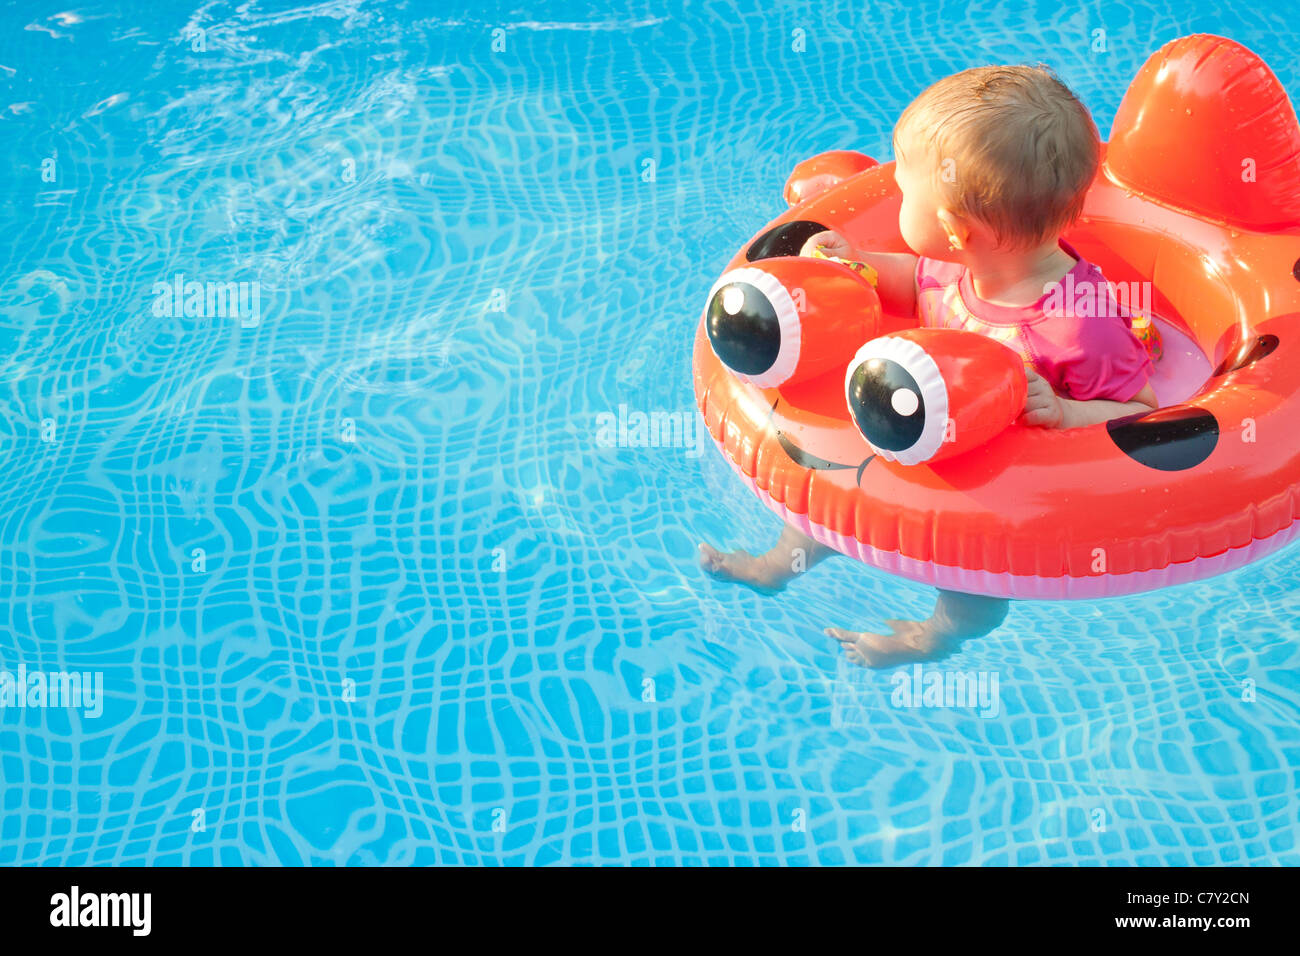 Small child in floatation device looking away while floating in a pool alone Stock Photo